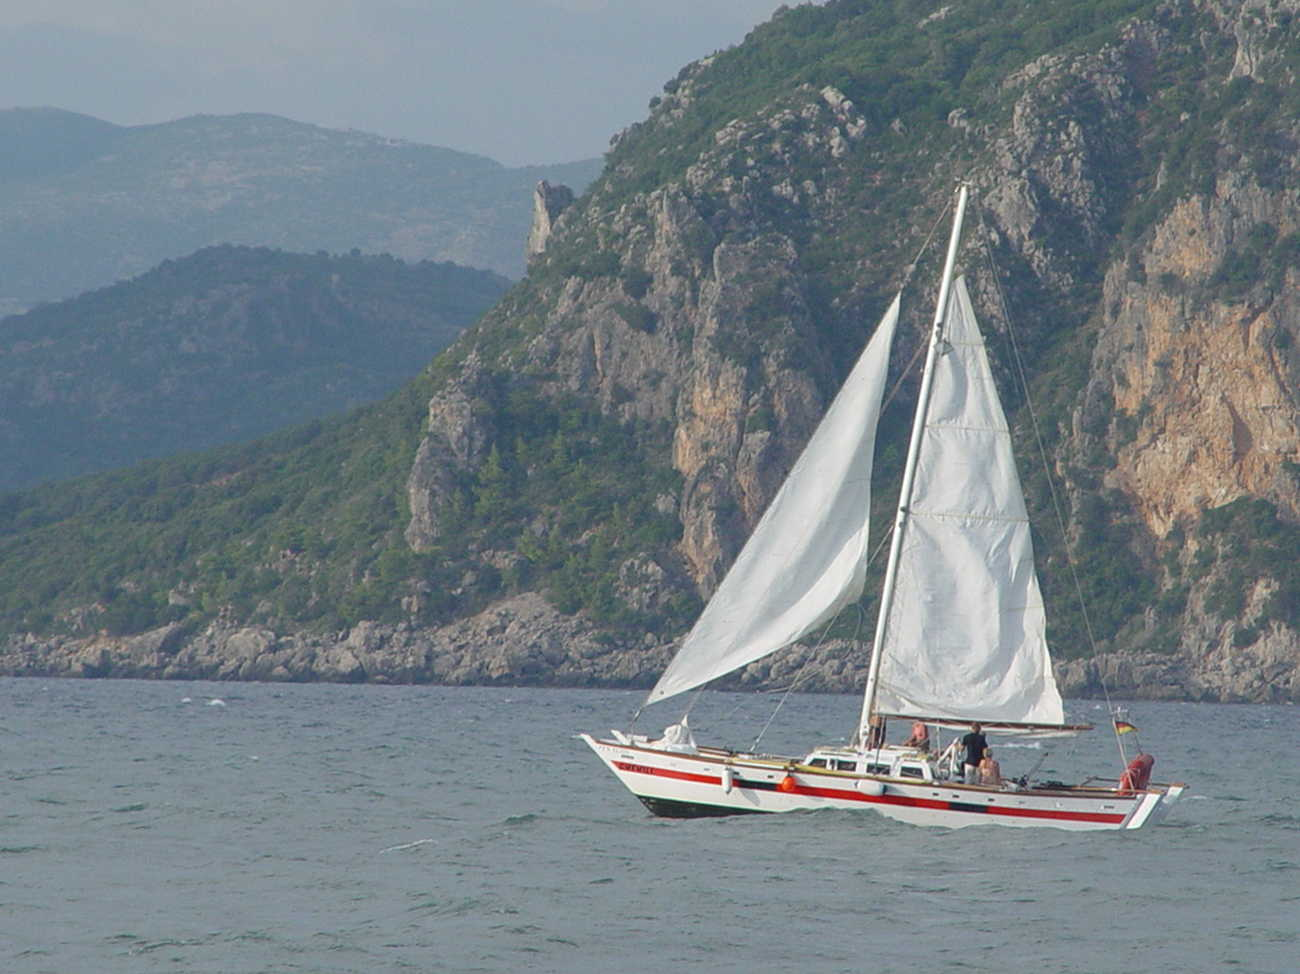 Red and white Narai, two people aboard, sailing against a backdrop of mountains covered in greenery